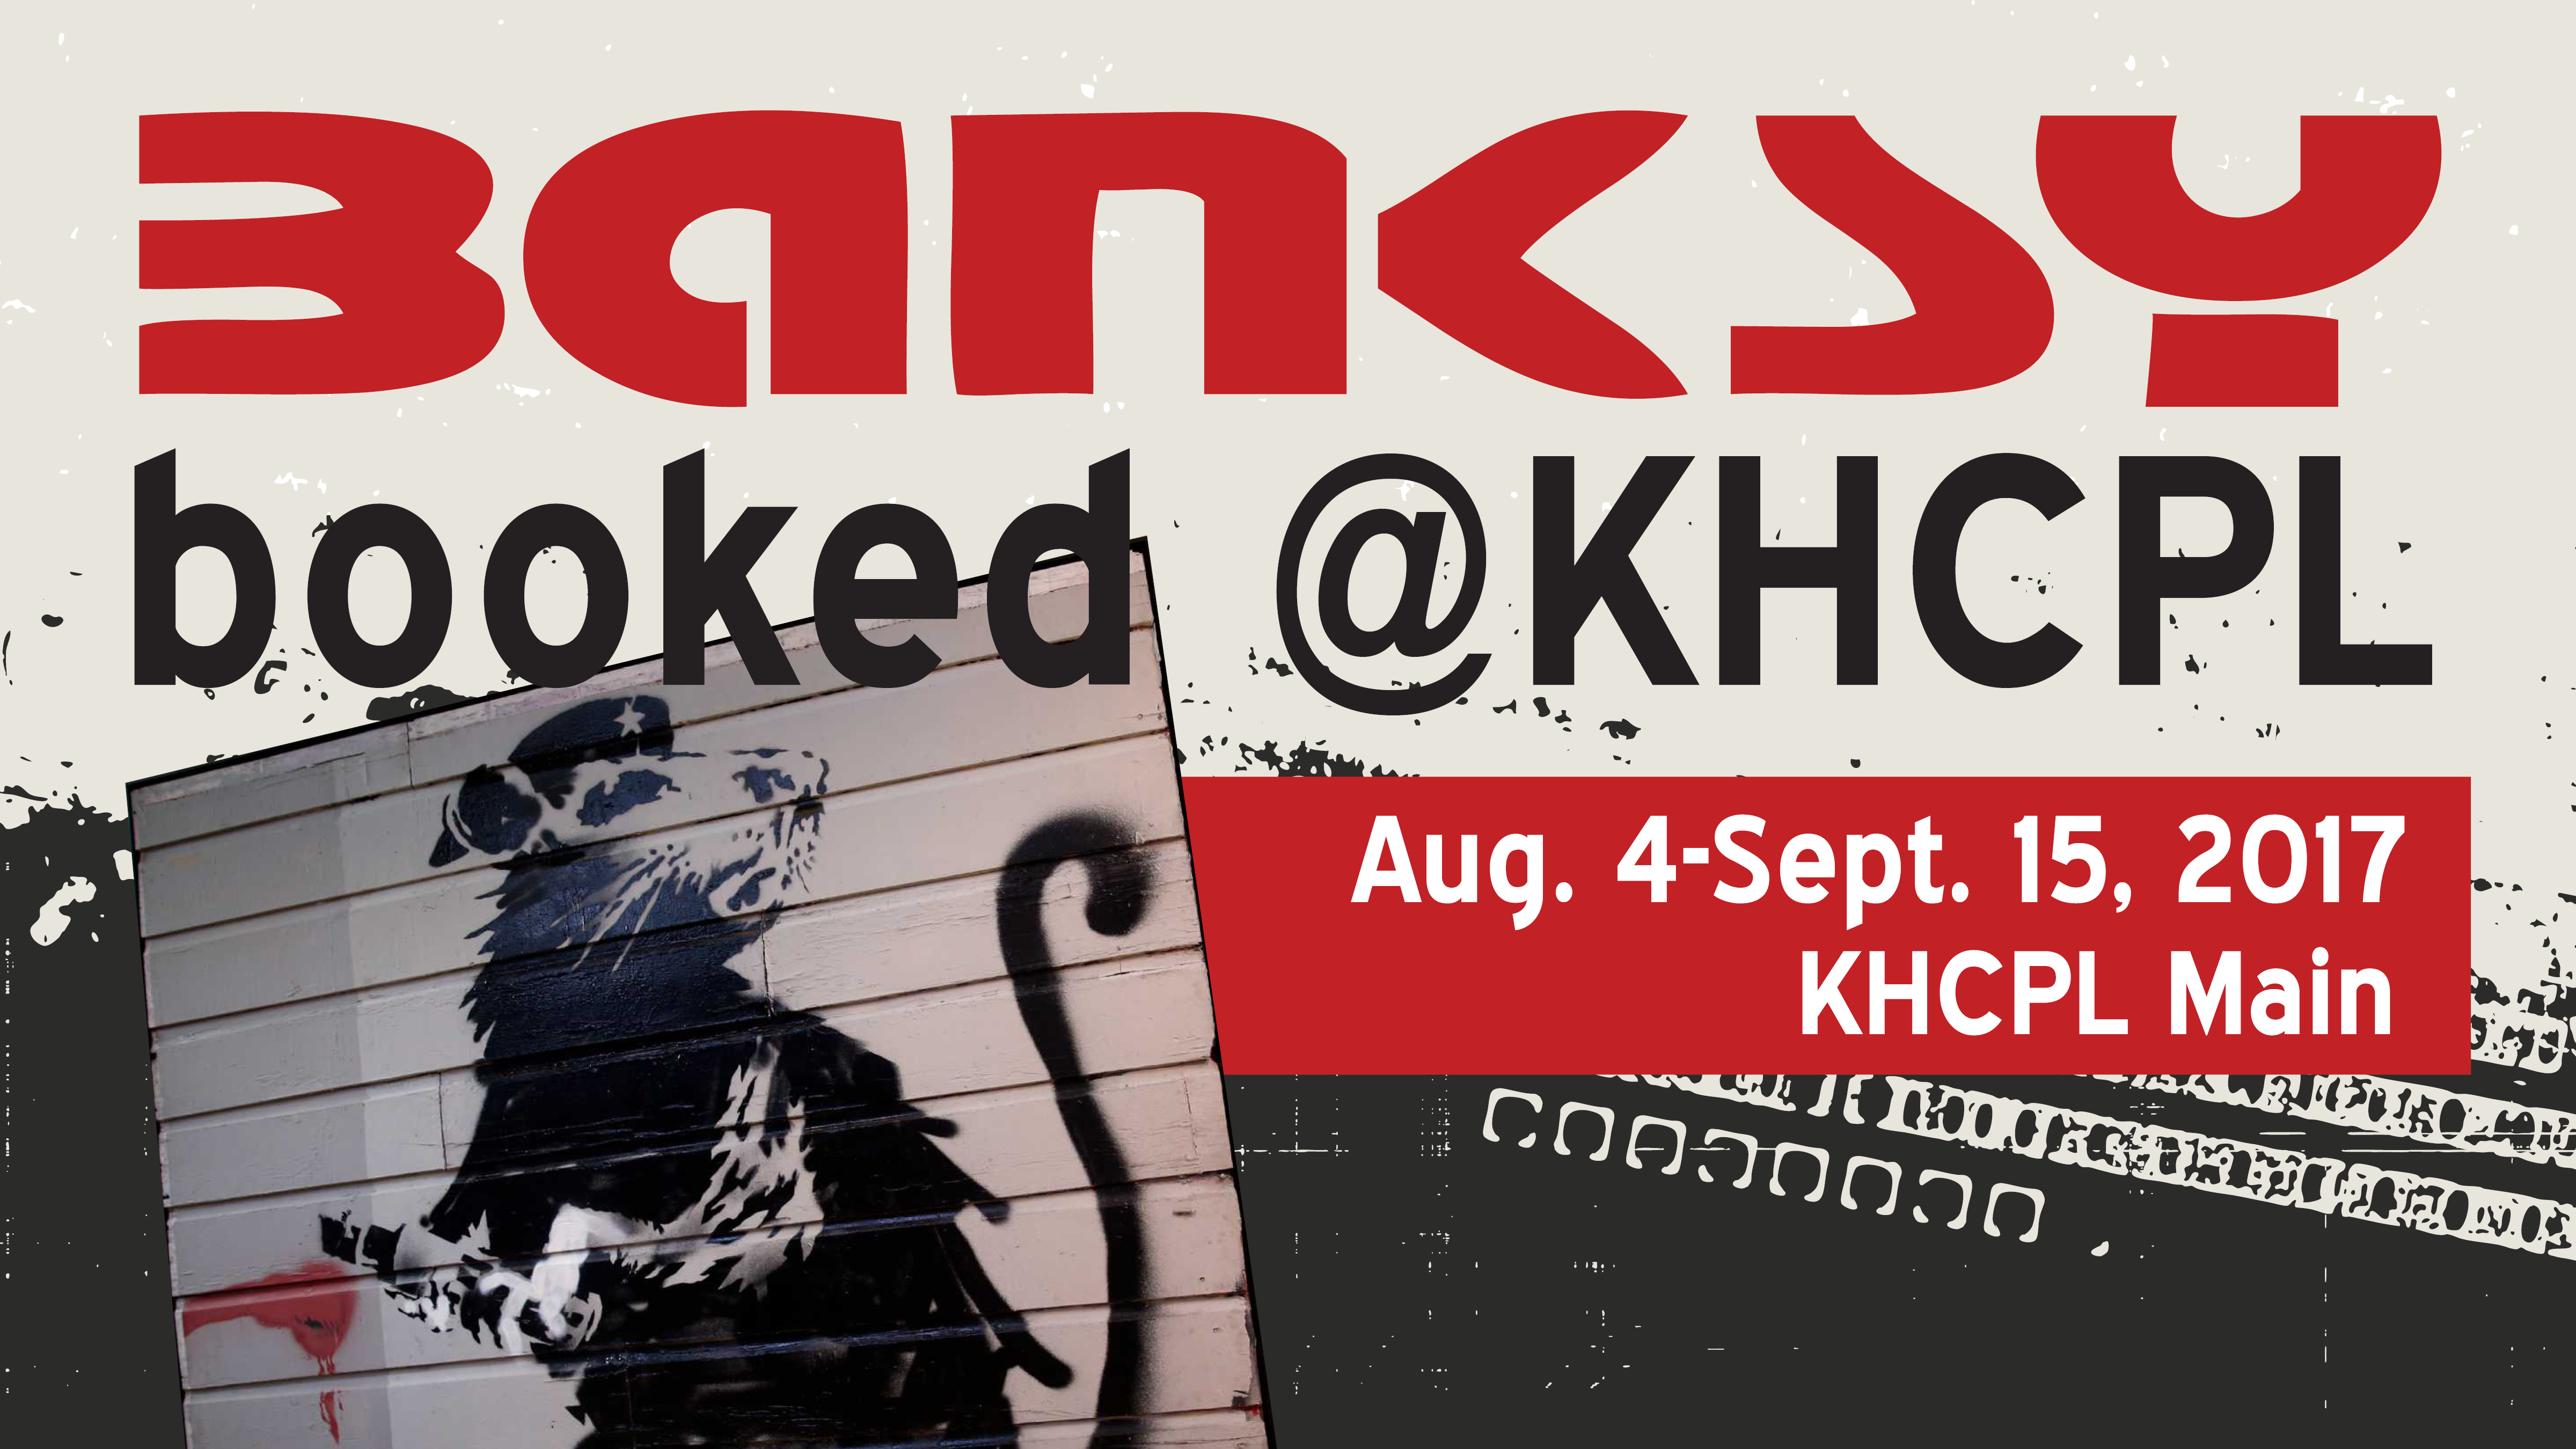 Banksy's Art Piece. Banksy, coming to KHCPL Aug. 4-Sept. 15